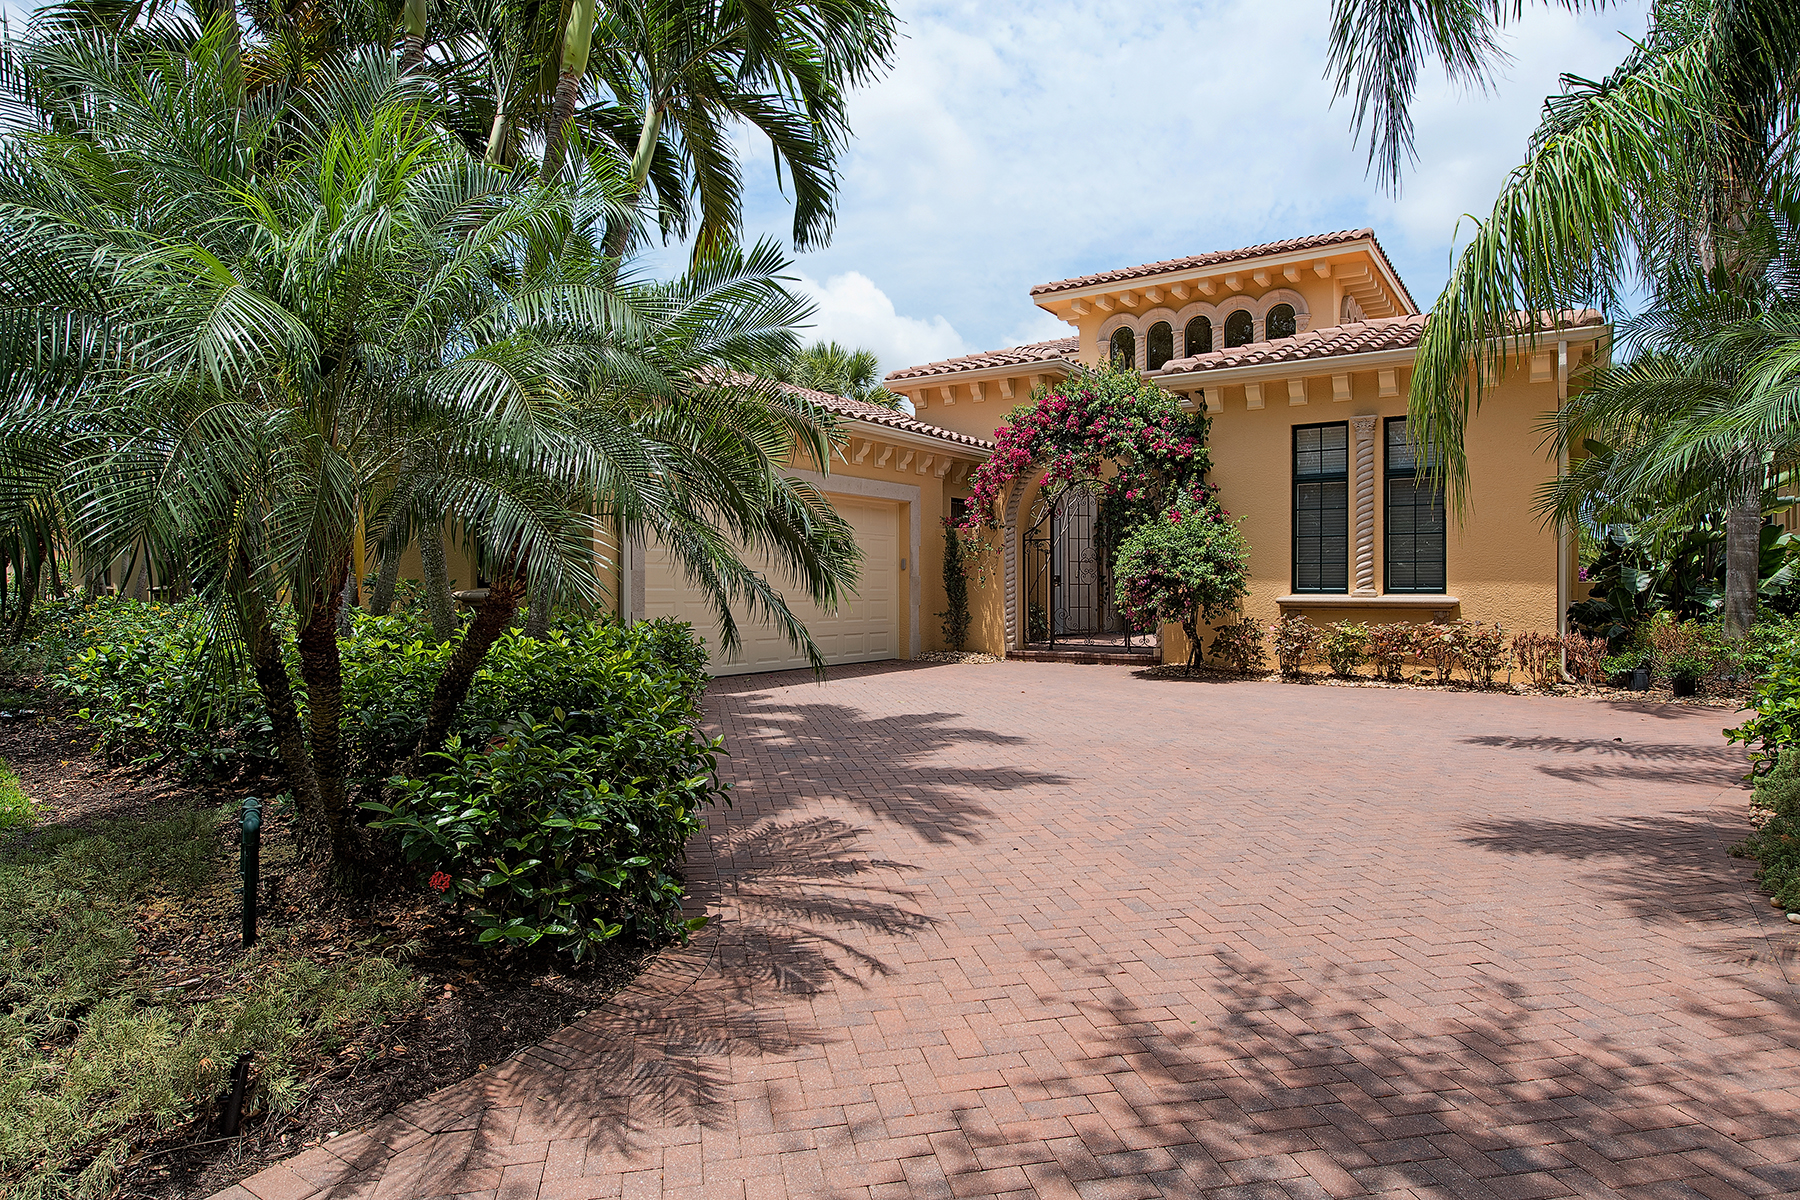 Single Family Home for Sale at Naples 2841 Capistrano Way Naples, Florida, 34105 United States